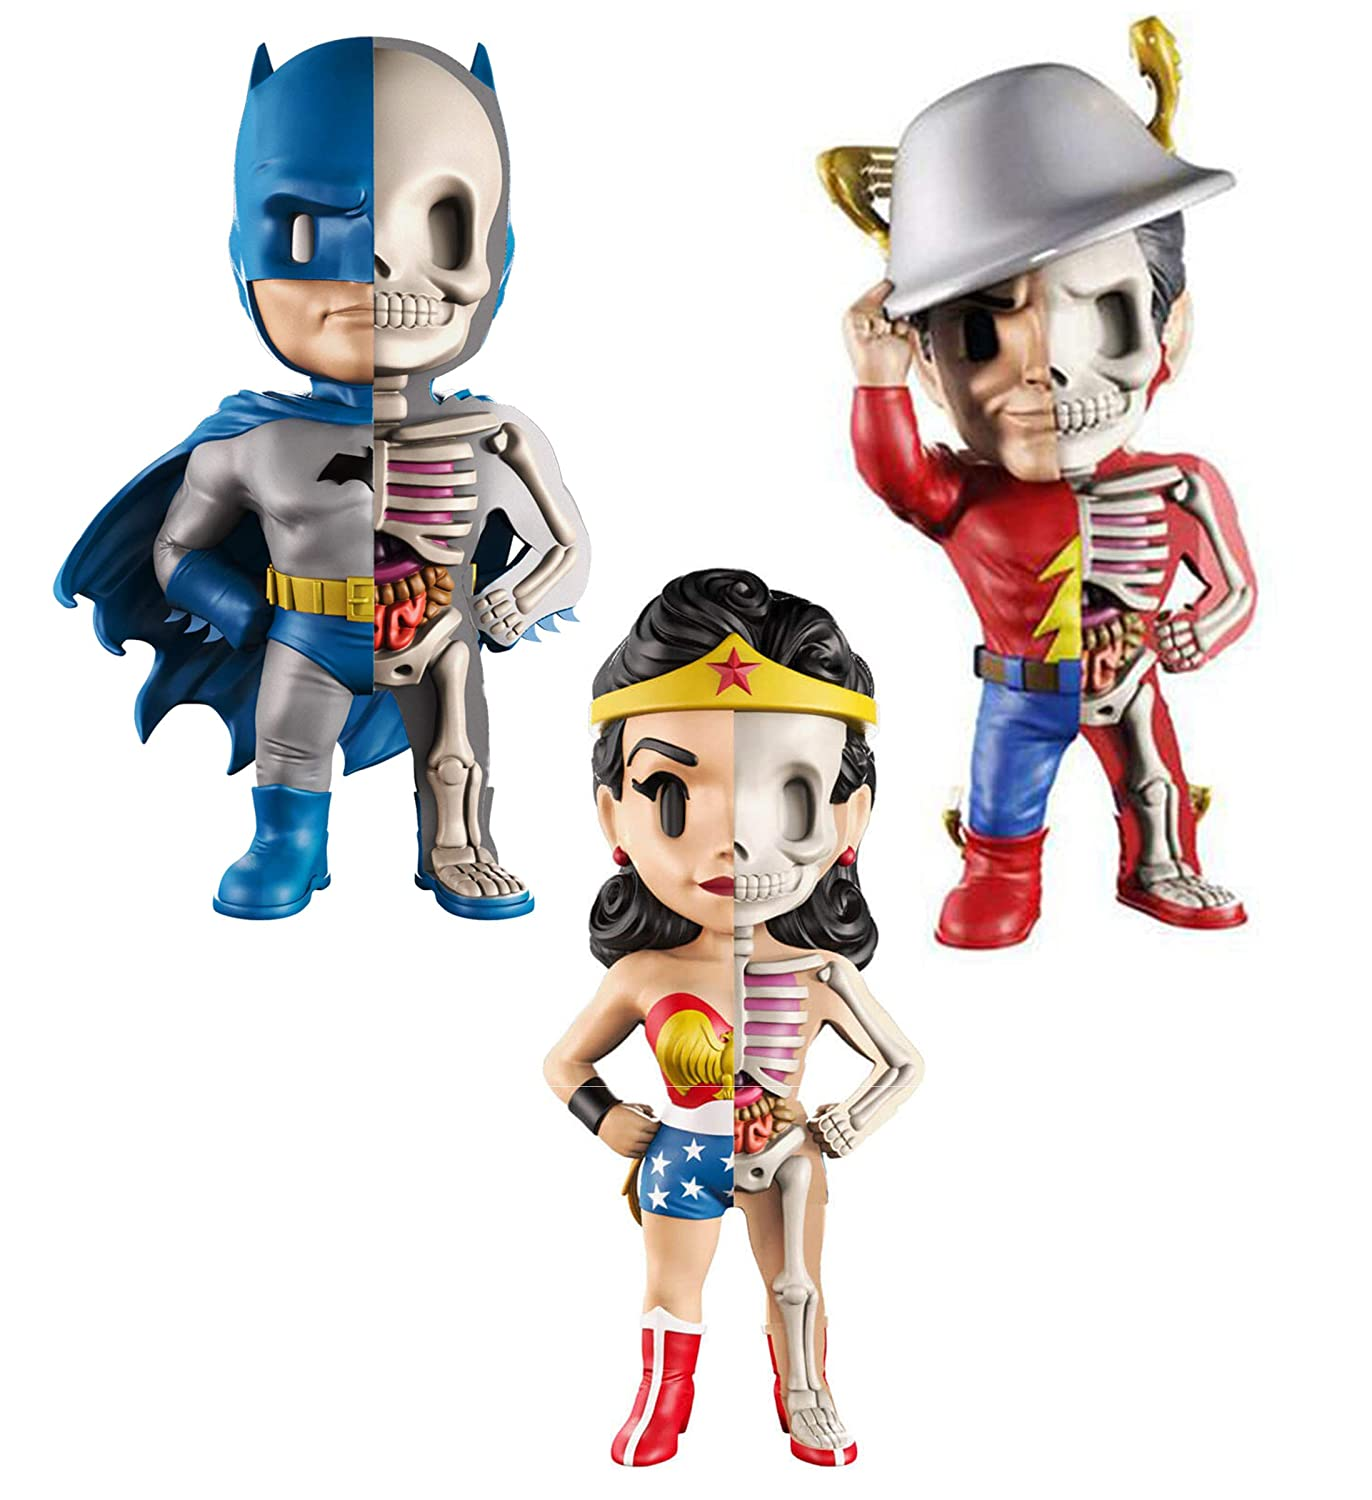 XXRay DC XXRAY DC Comics Golden Age Wonder Woman 4D Vinyl Action Figure by Jason